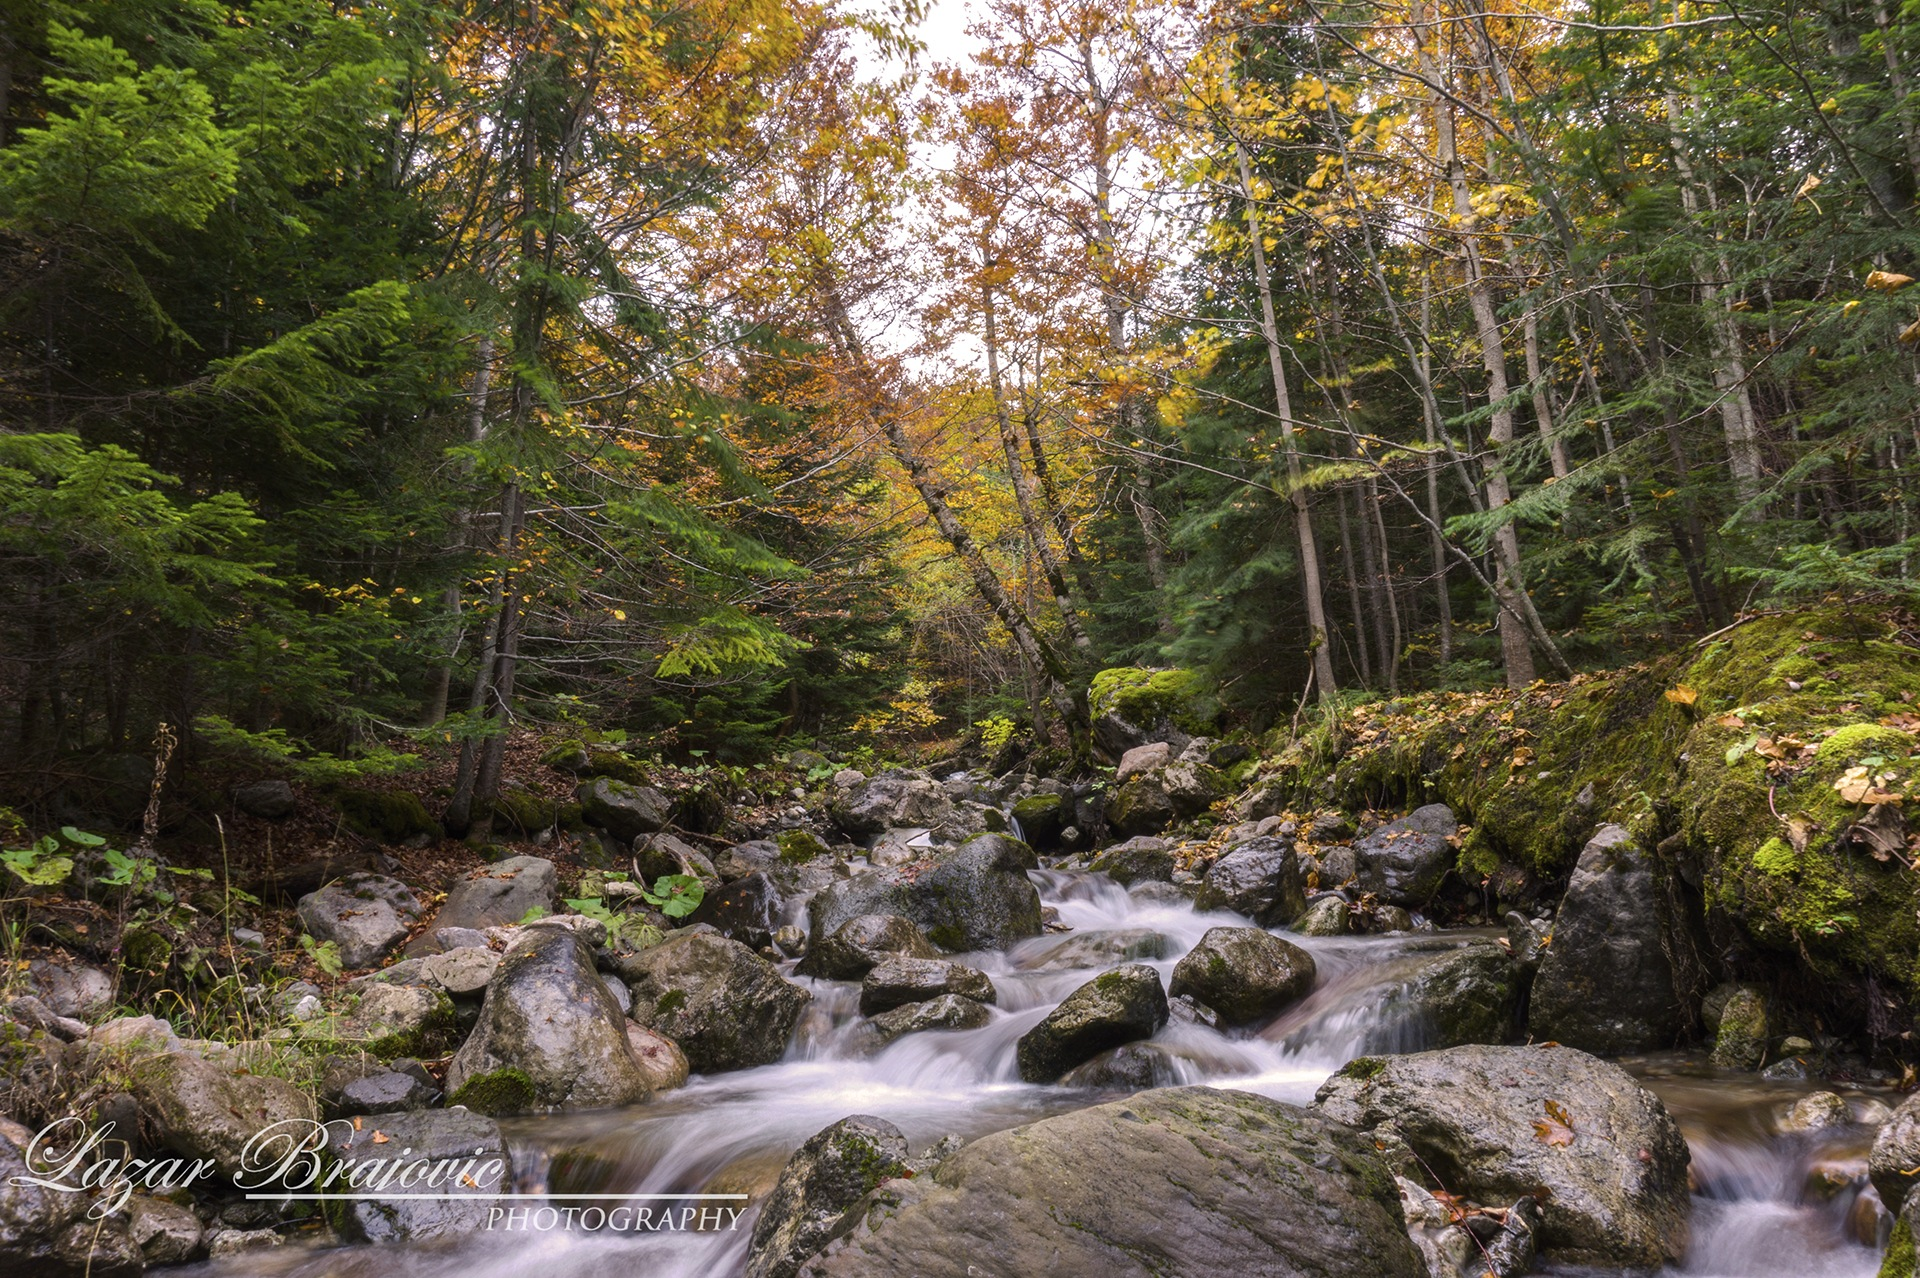 The voice of the forest by Broyson